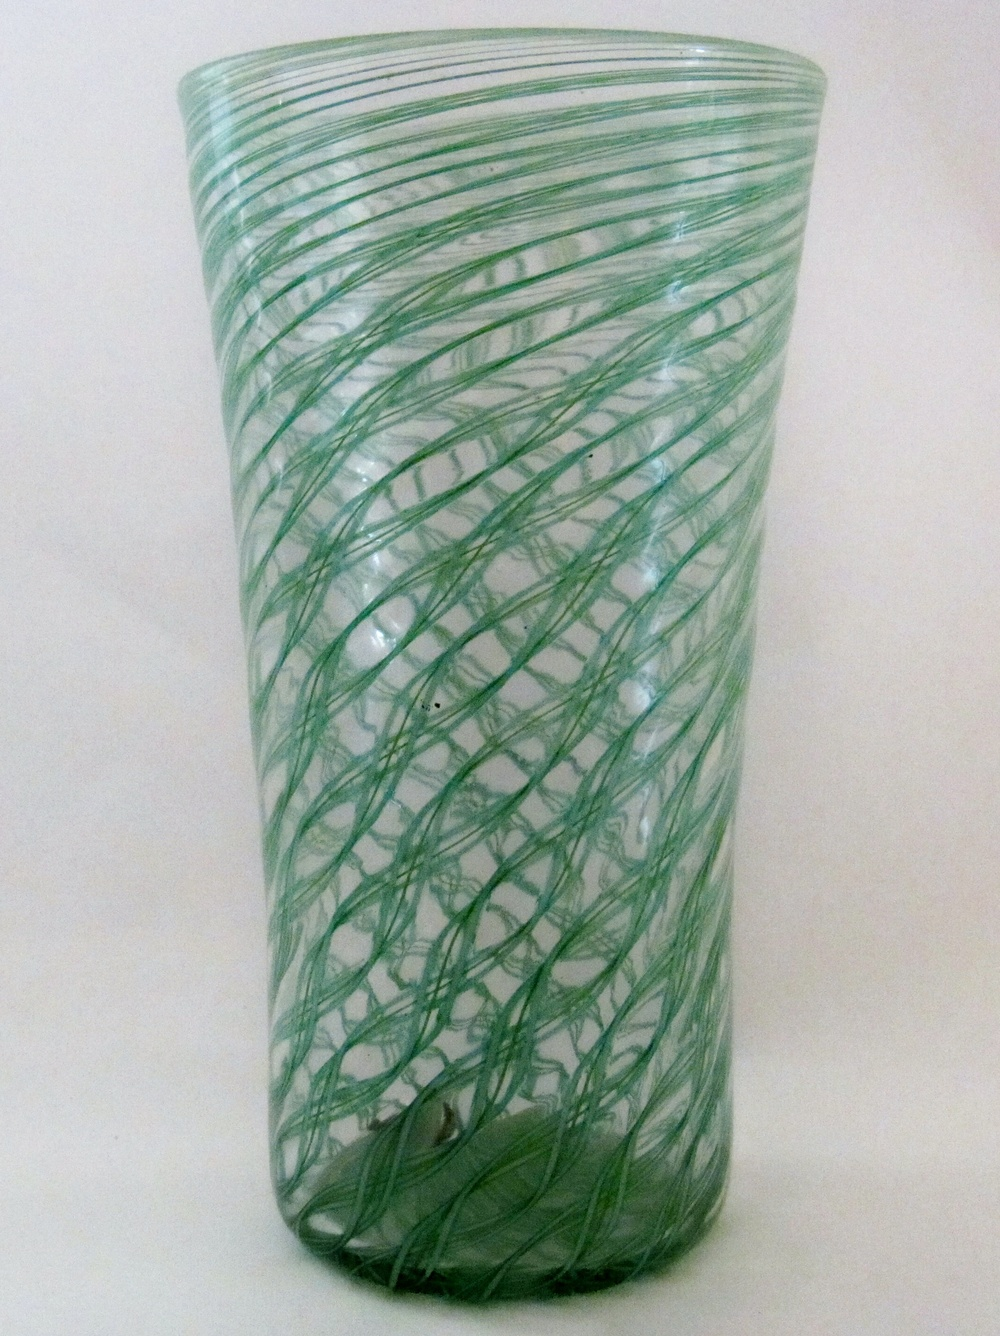 Light Green Cane Glass 3.jpg